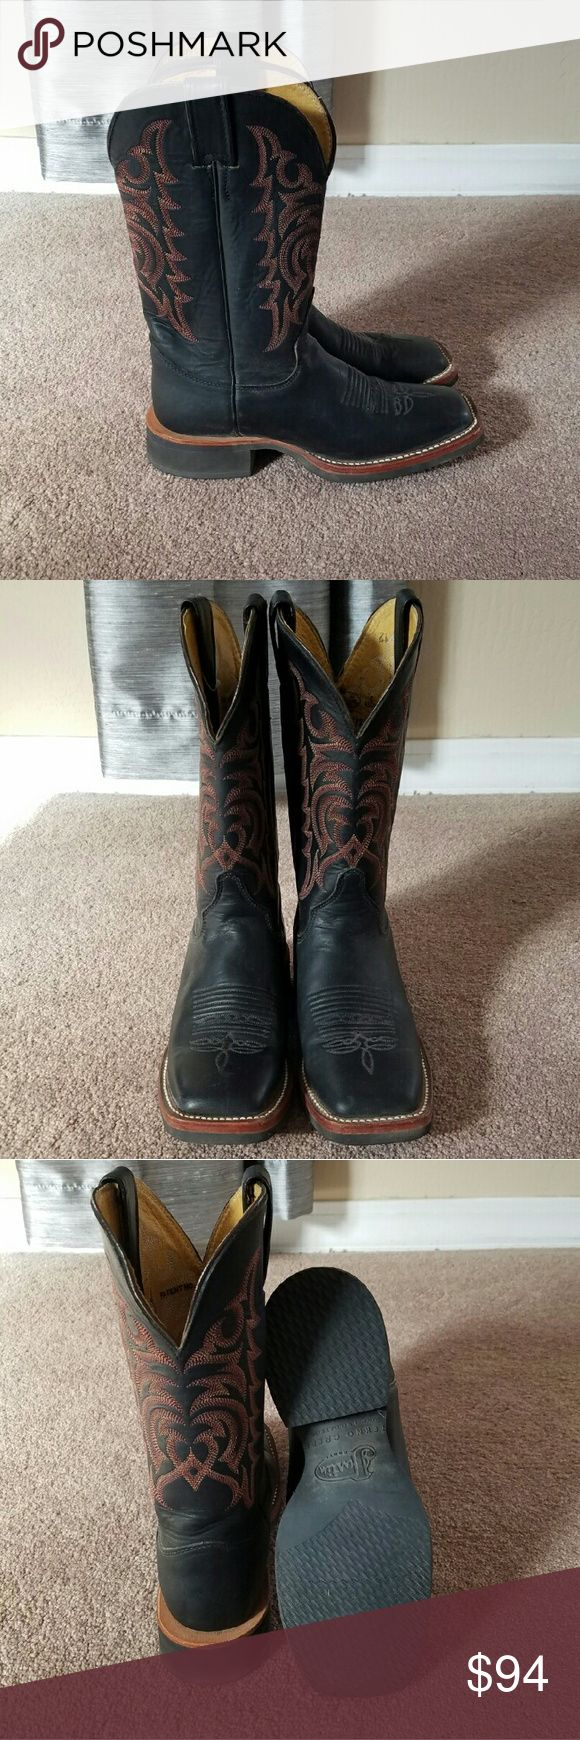 Justin Boots, Size 6.5 B Justin Boots, Size 6.5 B, Black Square Toe, Tekno Crepe Sole, Lightly Worn. Justin Boots Shoes